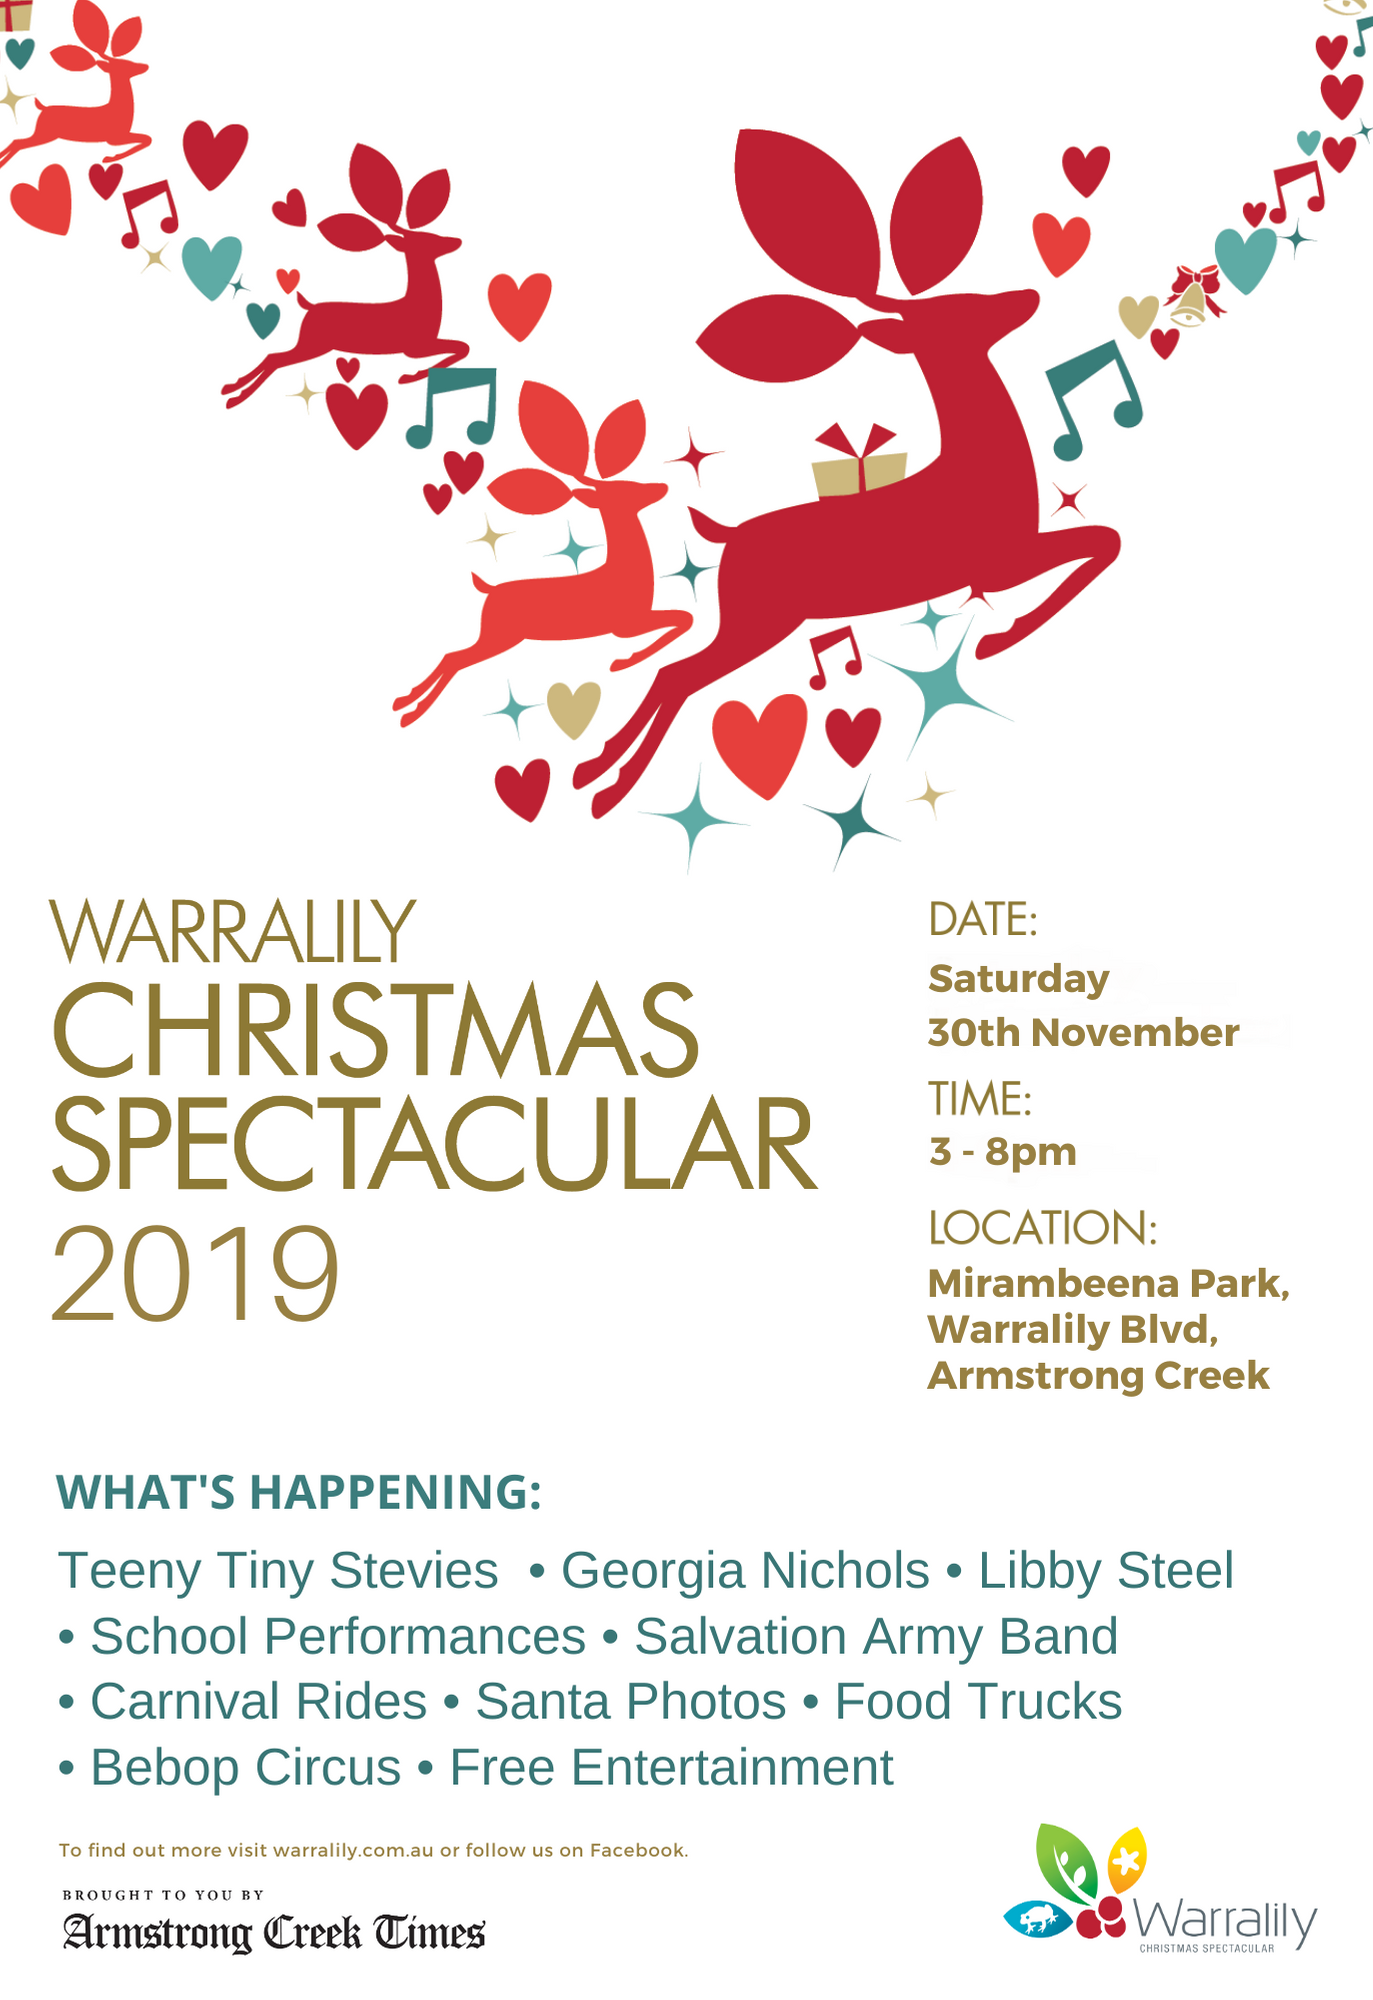 Warralily Christmas Spectacular 2019